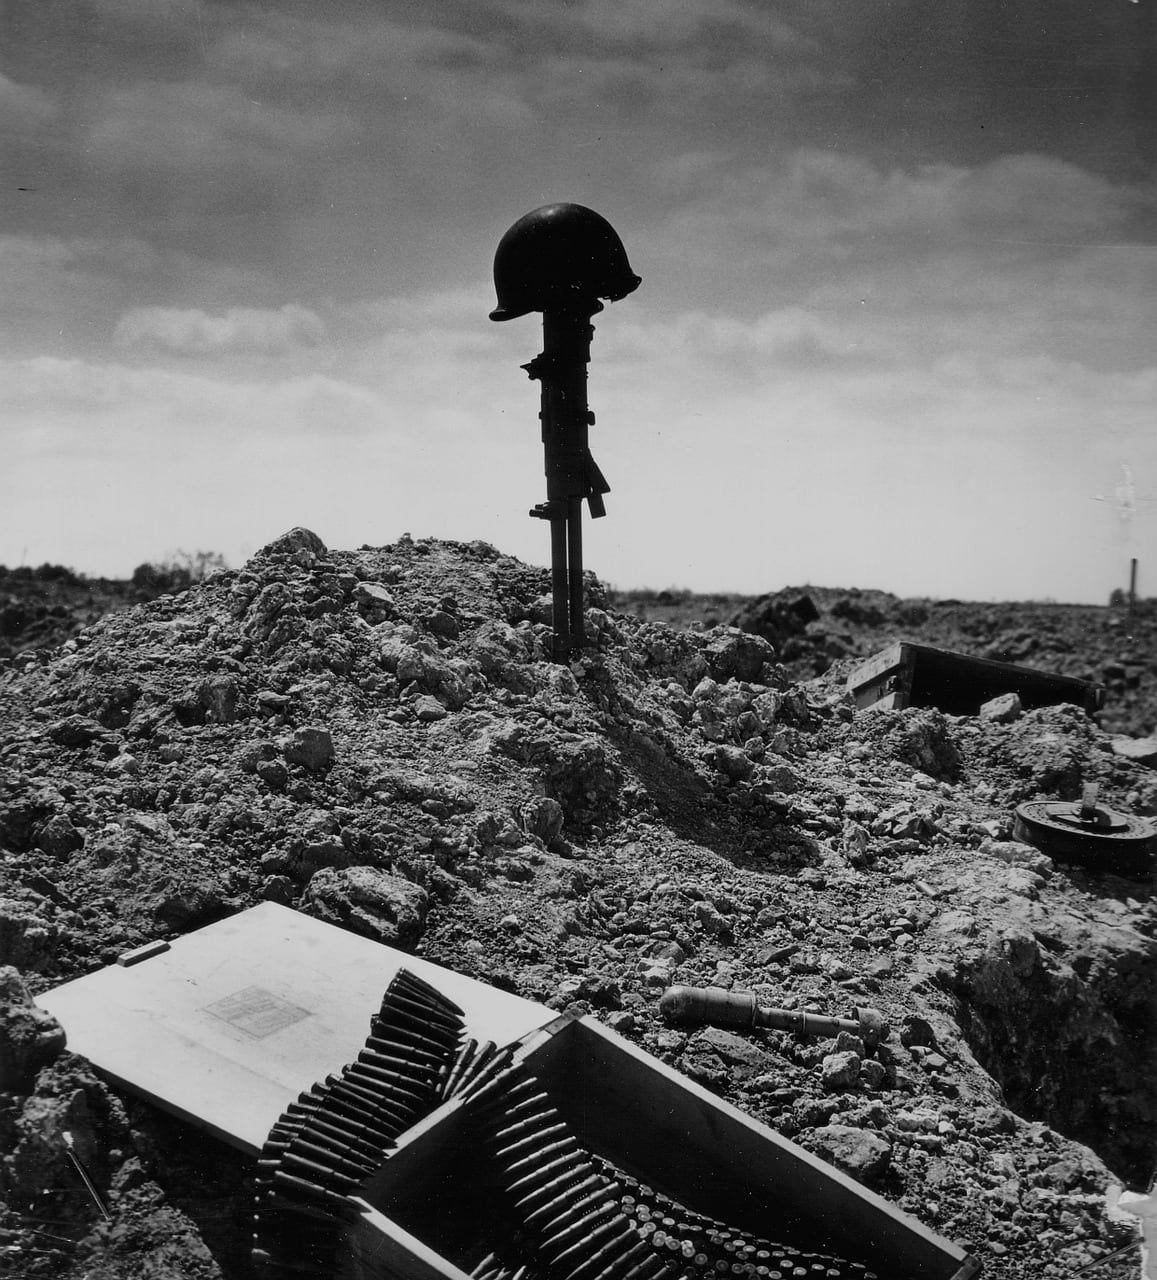 World War II Began On This Day In 1939 – Here Are Related Resources